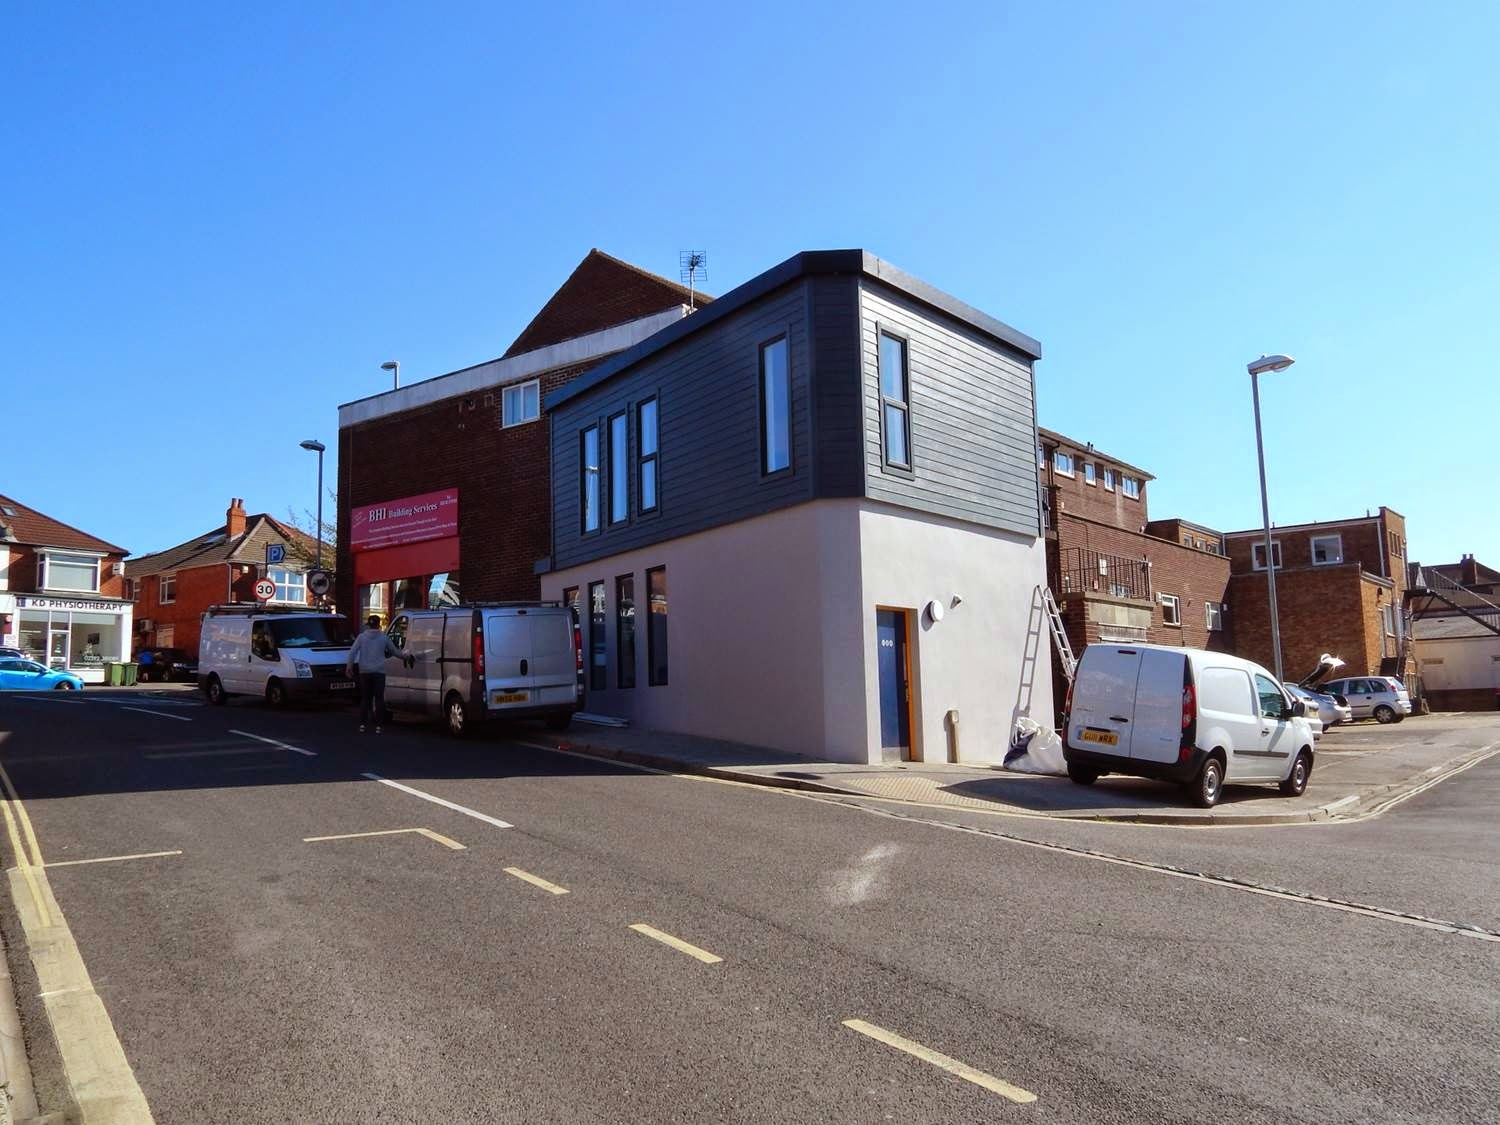 It is now a bijou officewith an added floor and spiral staircase  for a Cosham Estate Agent